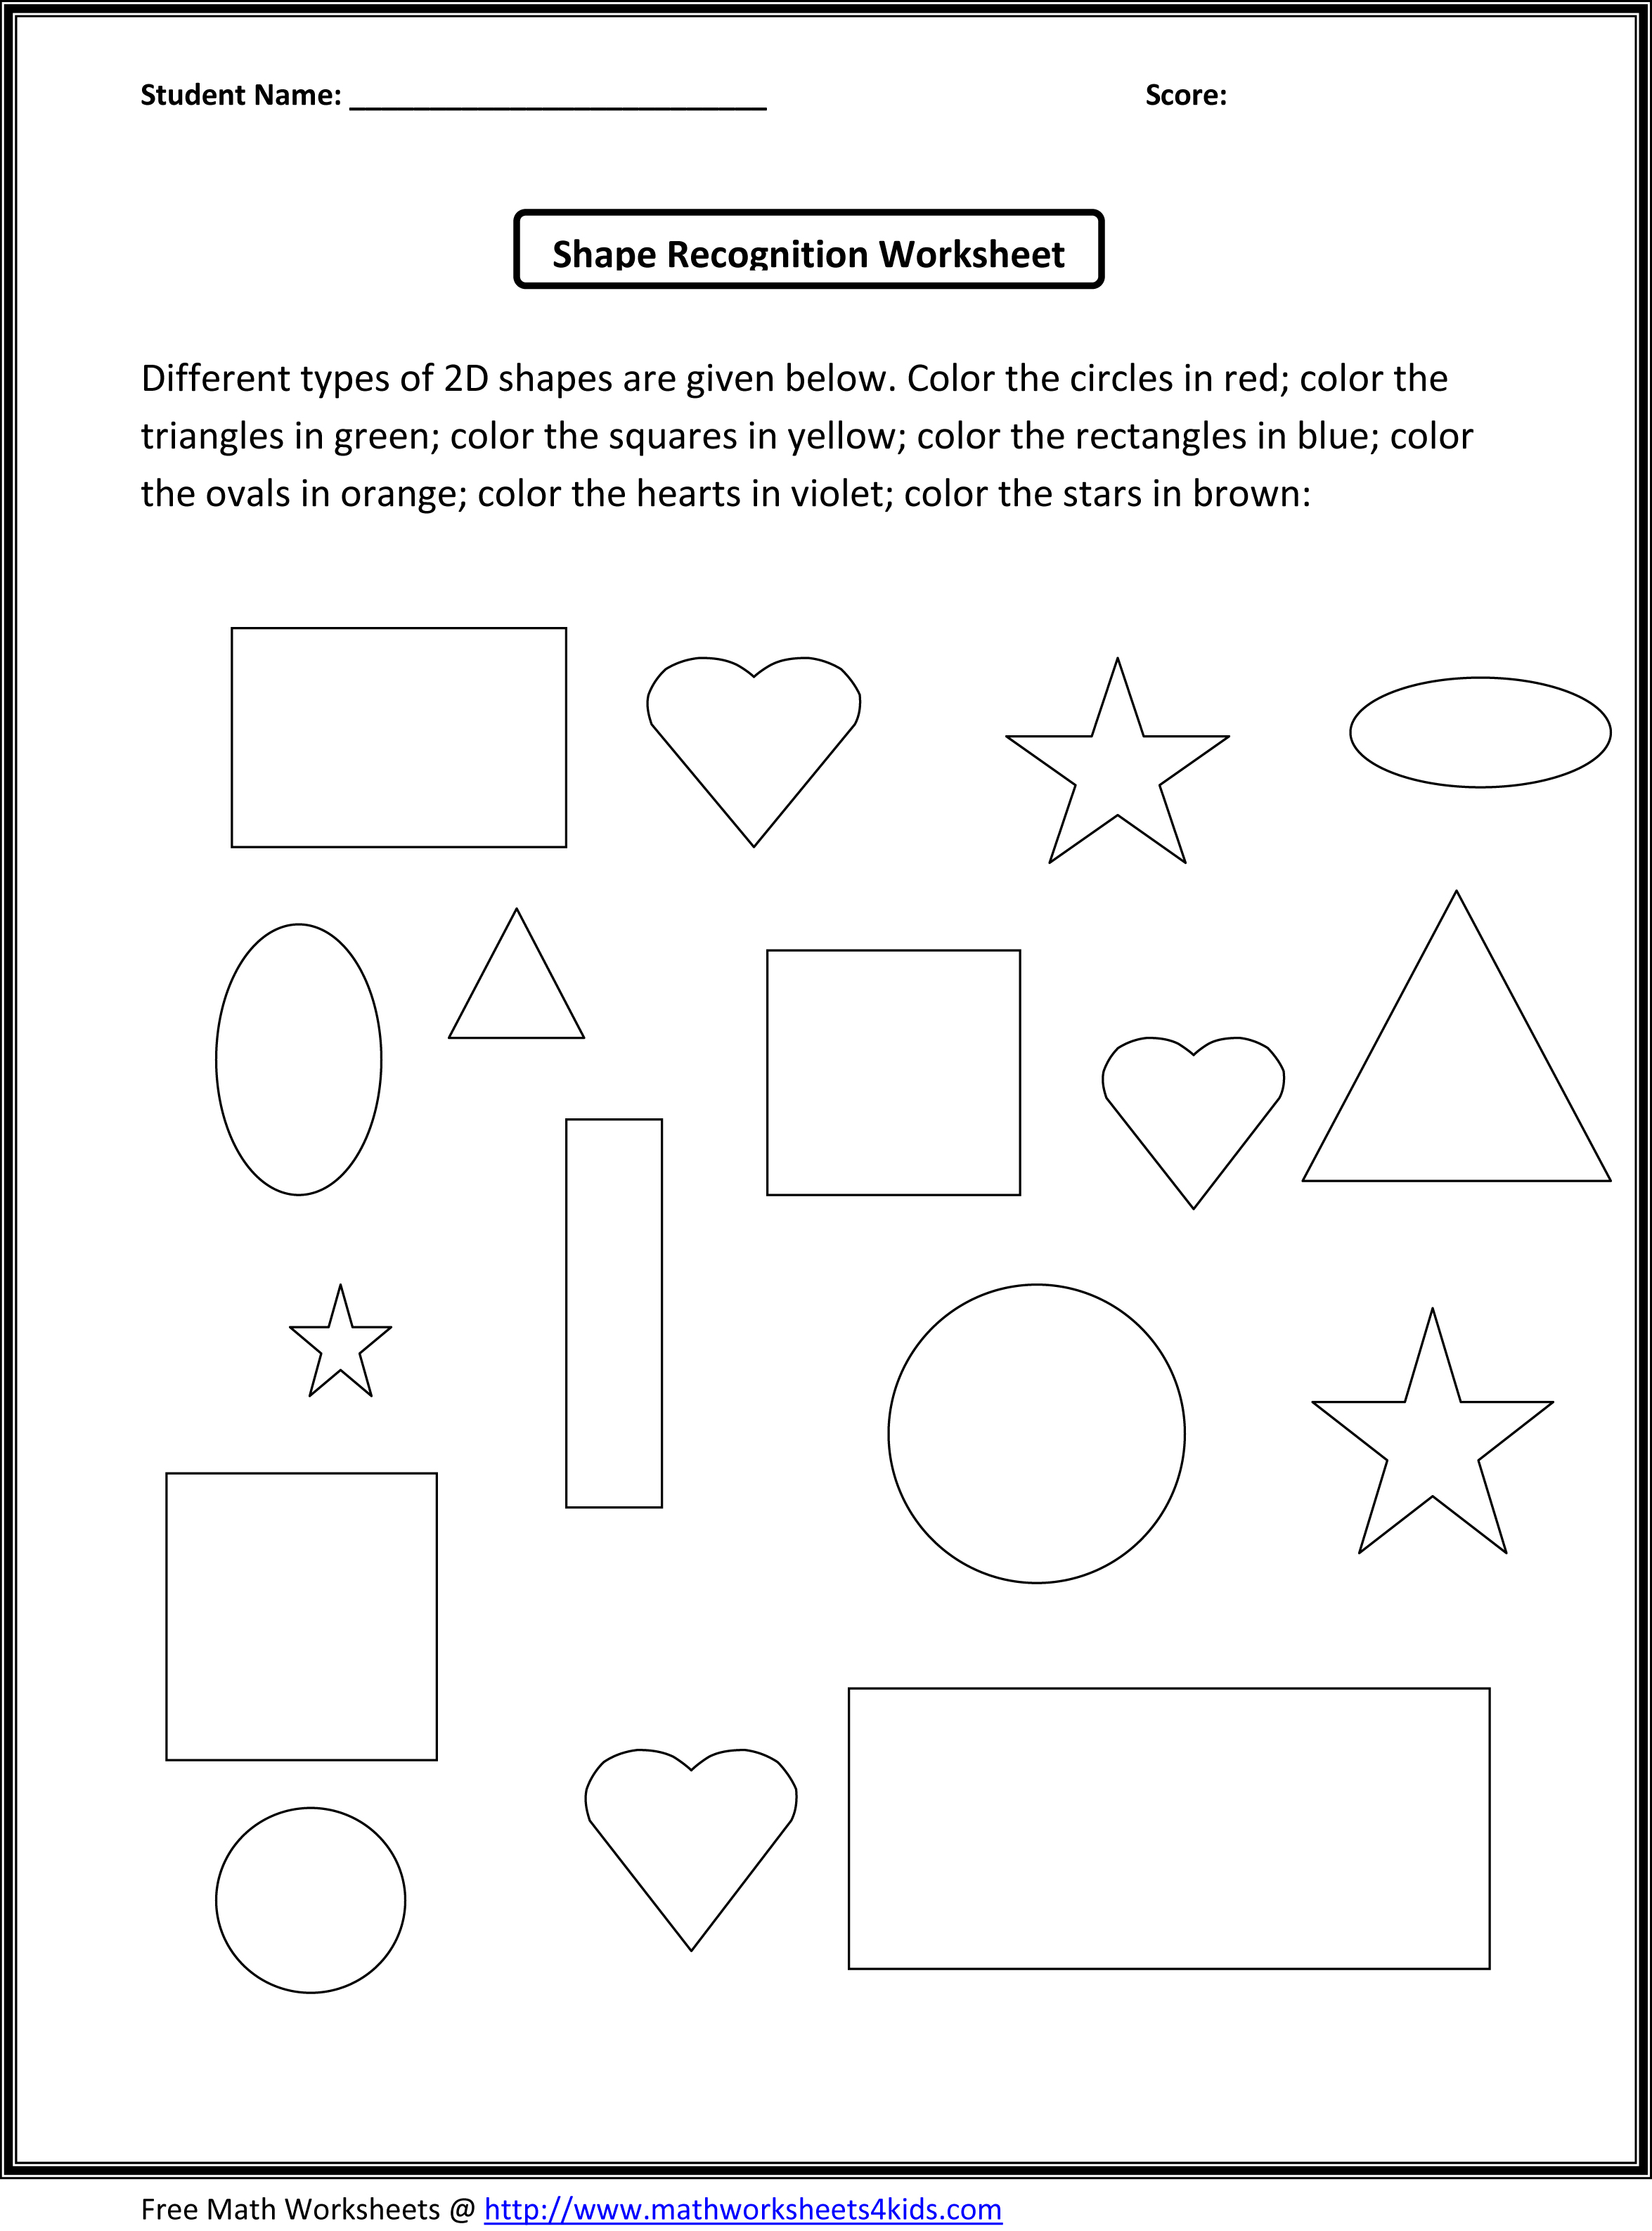 15 Best Images Of Life Skills Worksheets For Kids